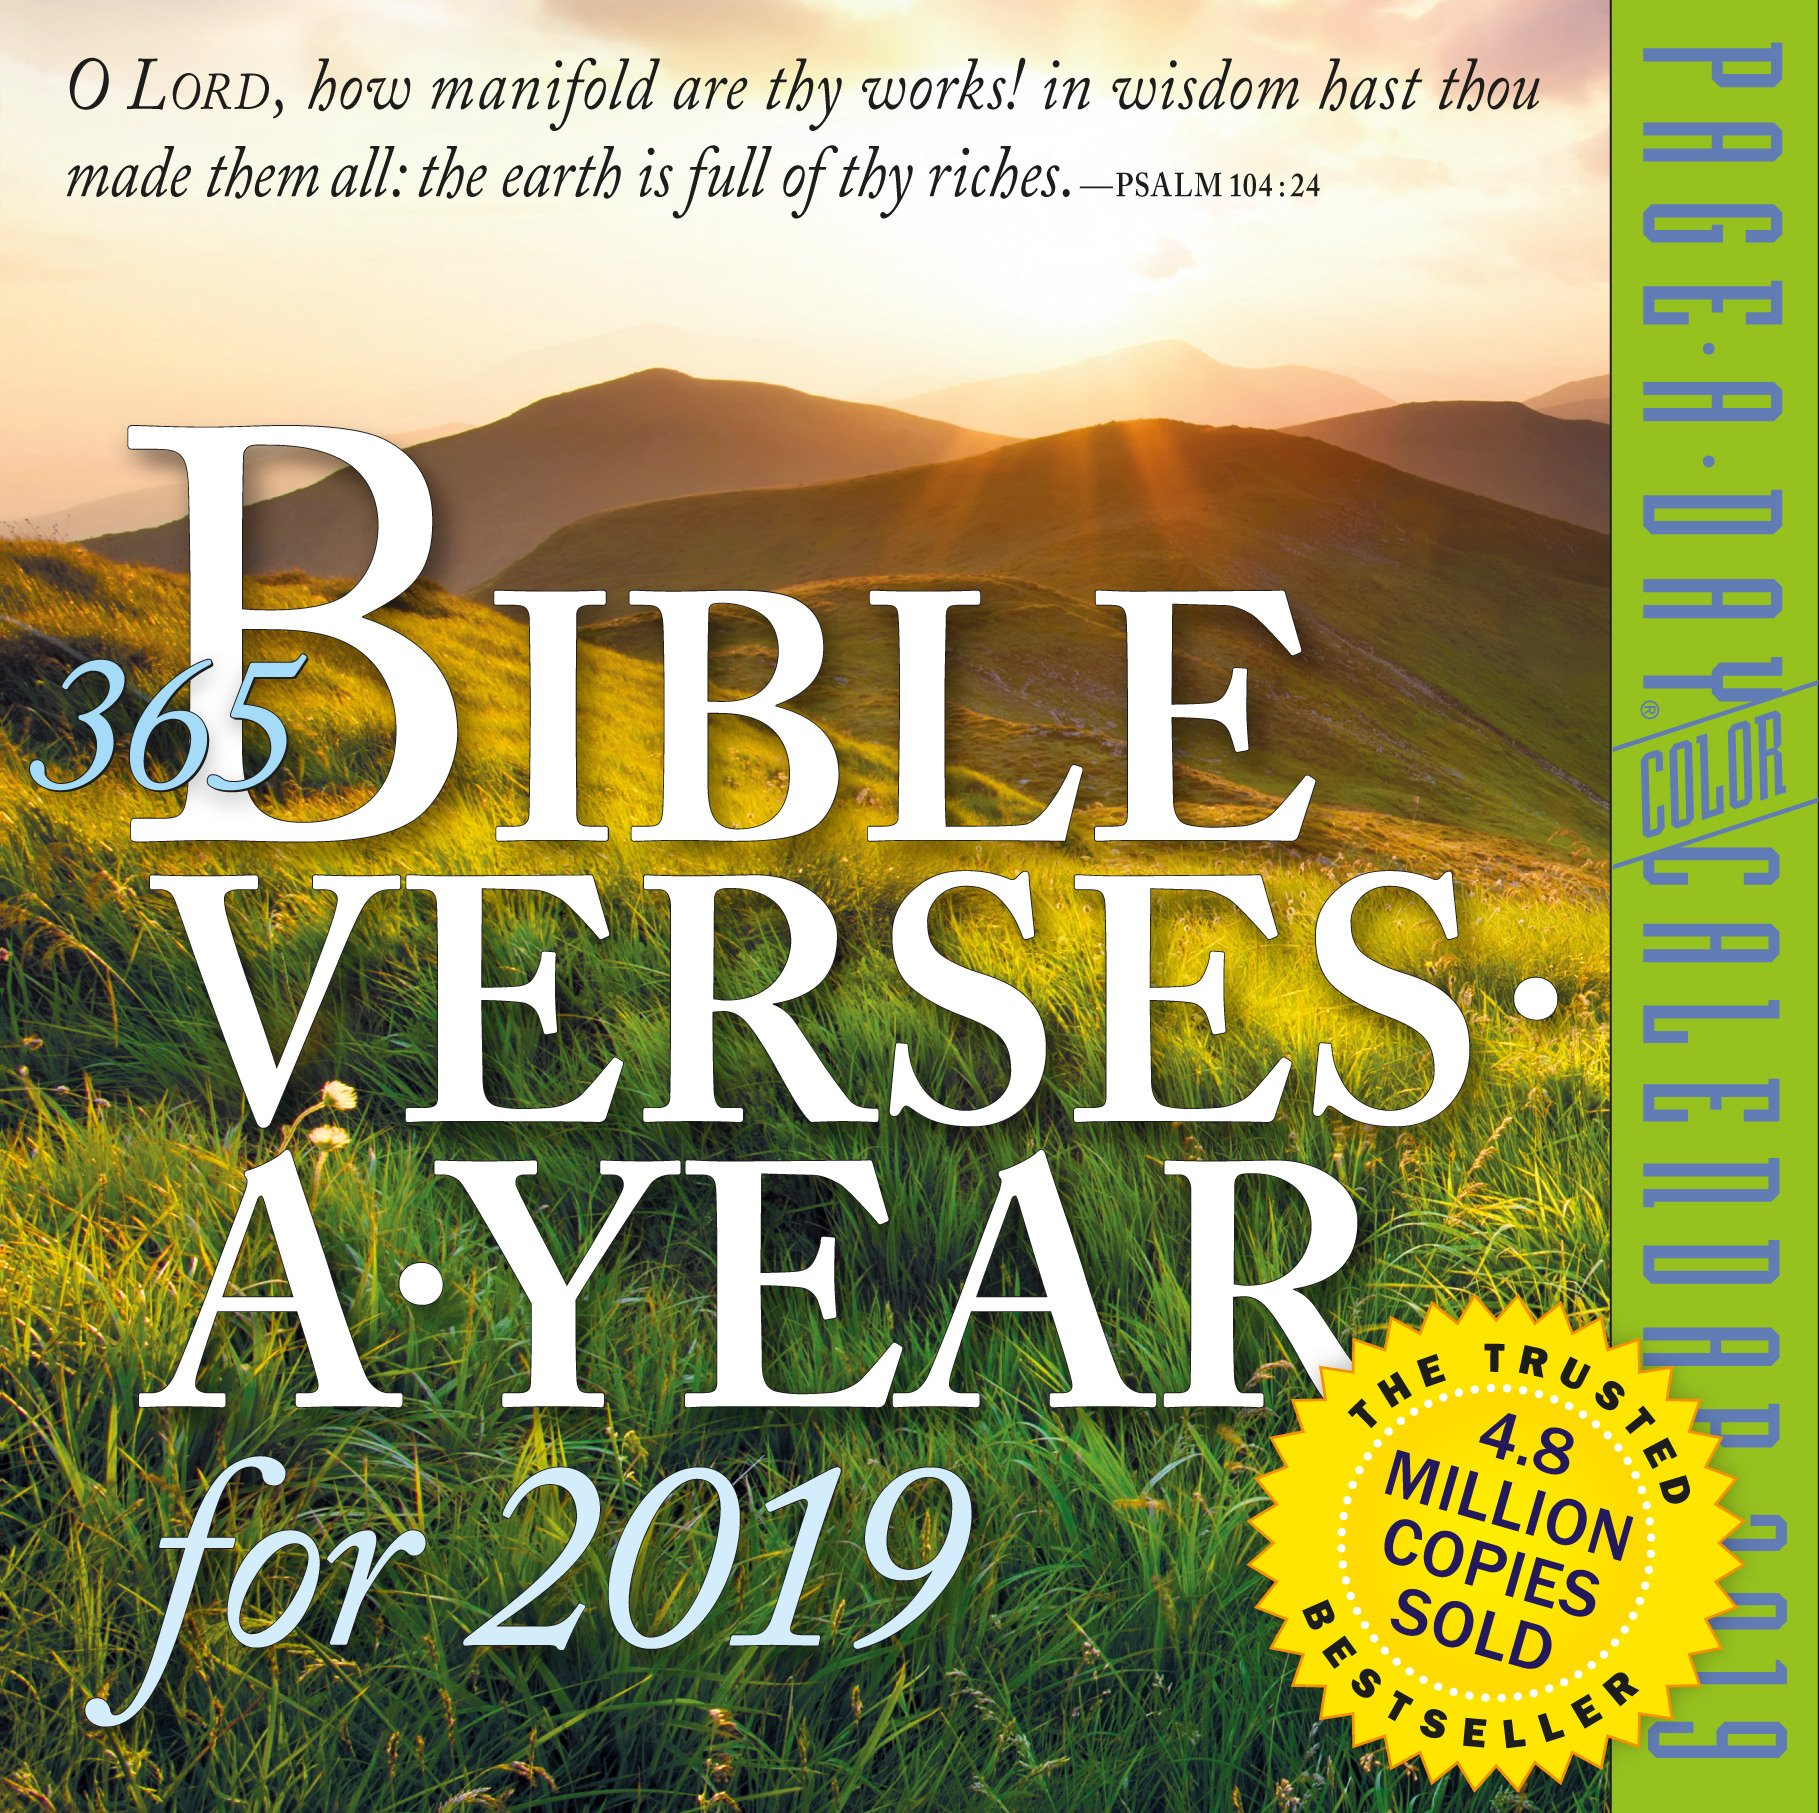 365 Bible Verses-A-Year Color Page-A-Day Desk Calendar 2019 [6'' x 6'' Inches]